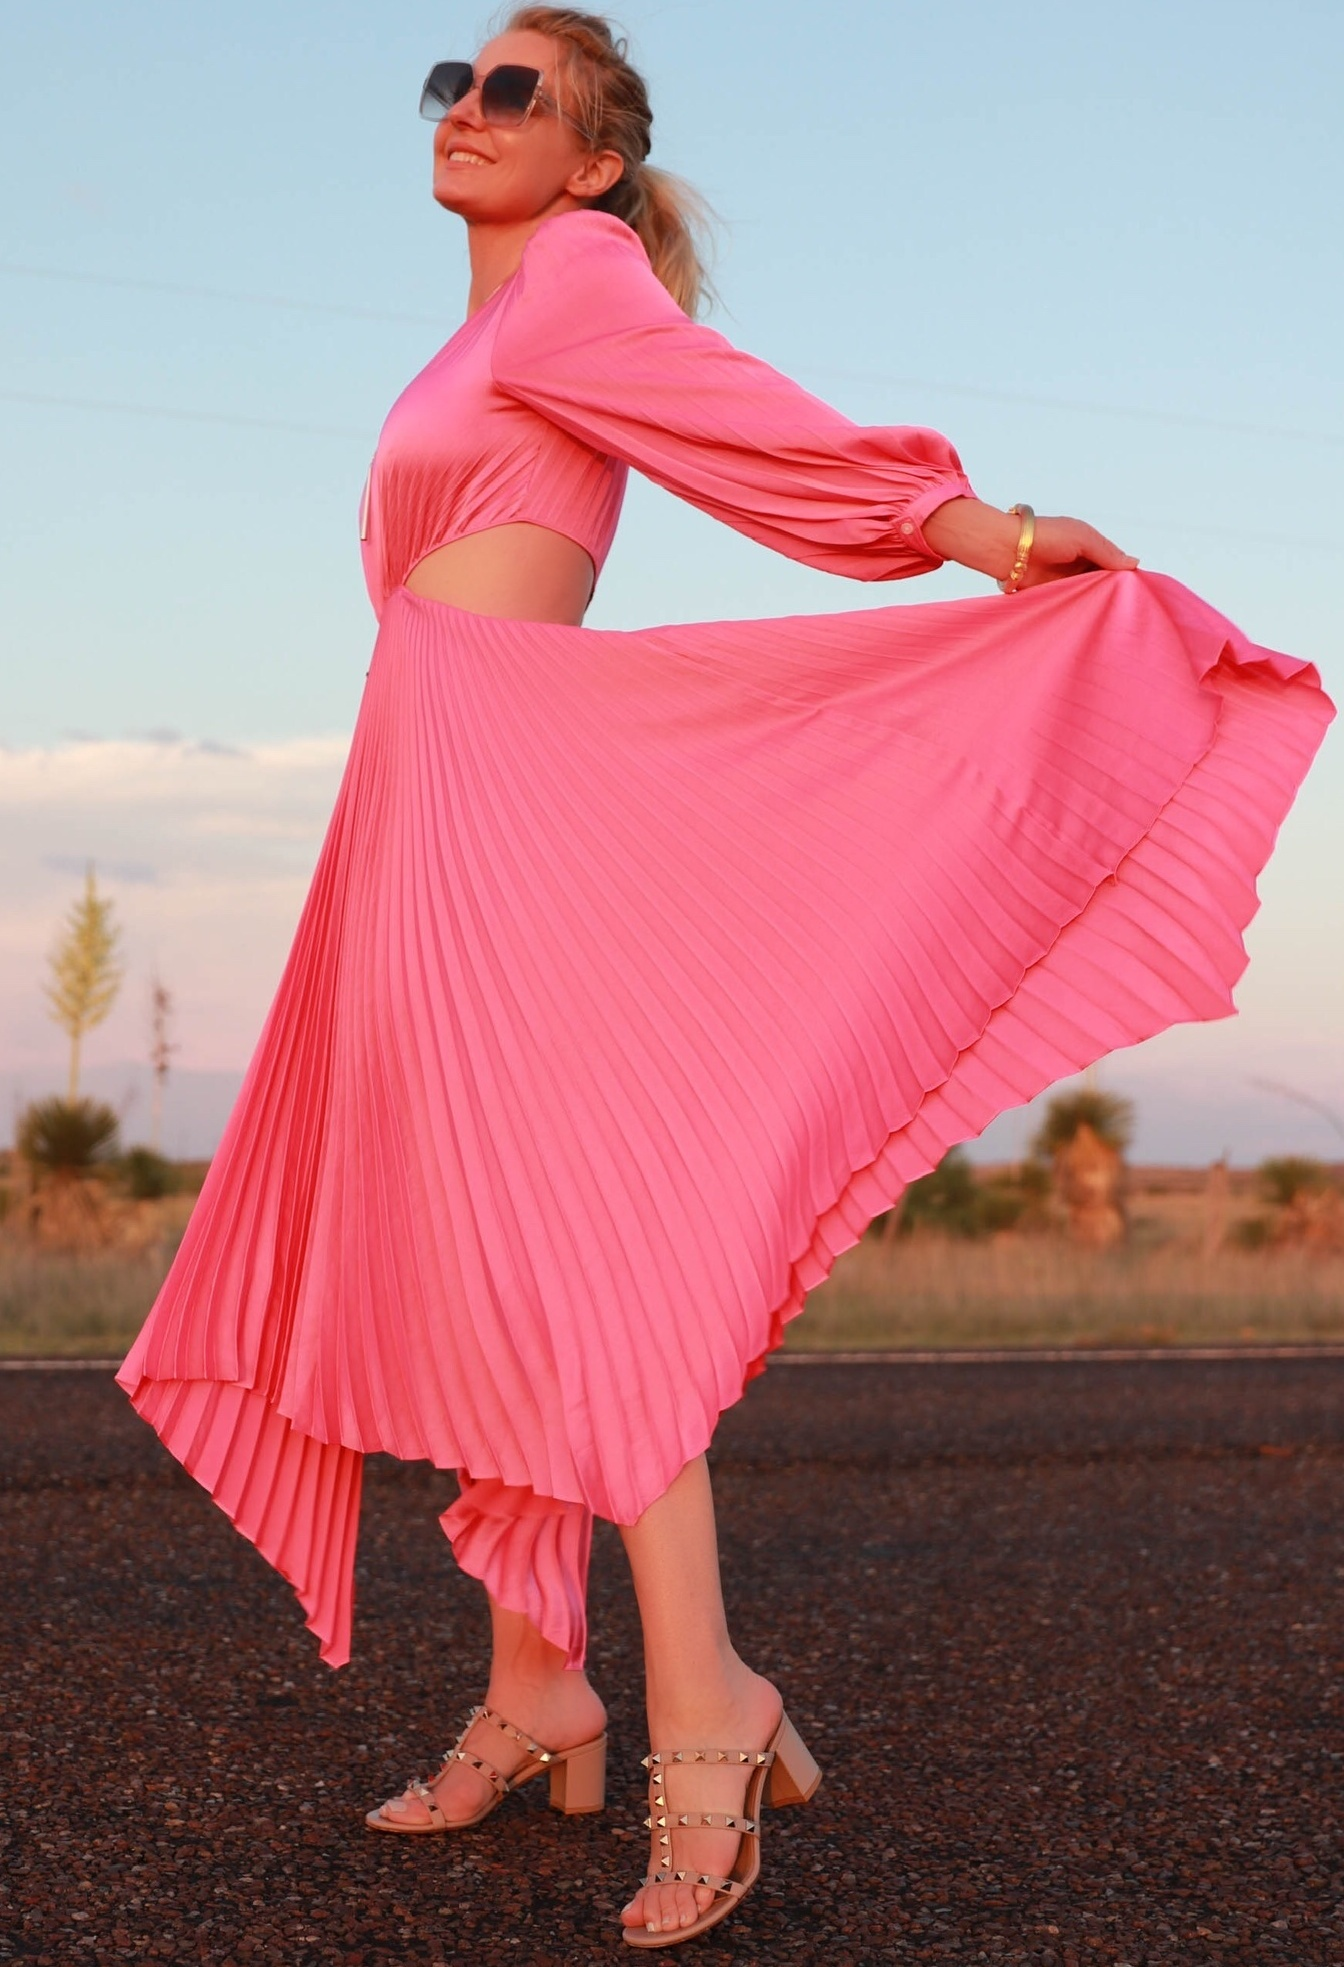 Pink Fashion Finds, Fashion blogger Erin Busbee of Busbee Style wearing a pink pleated dress by A.L.C. with Valentino Rockstud sandals walking in the road in South Texas